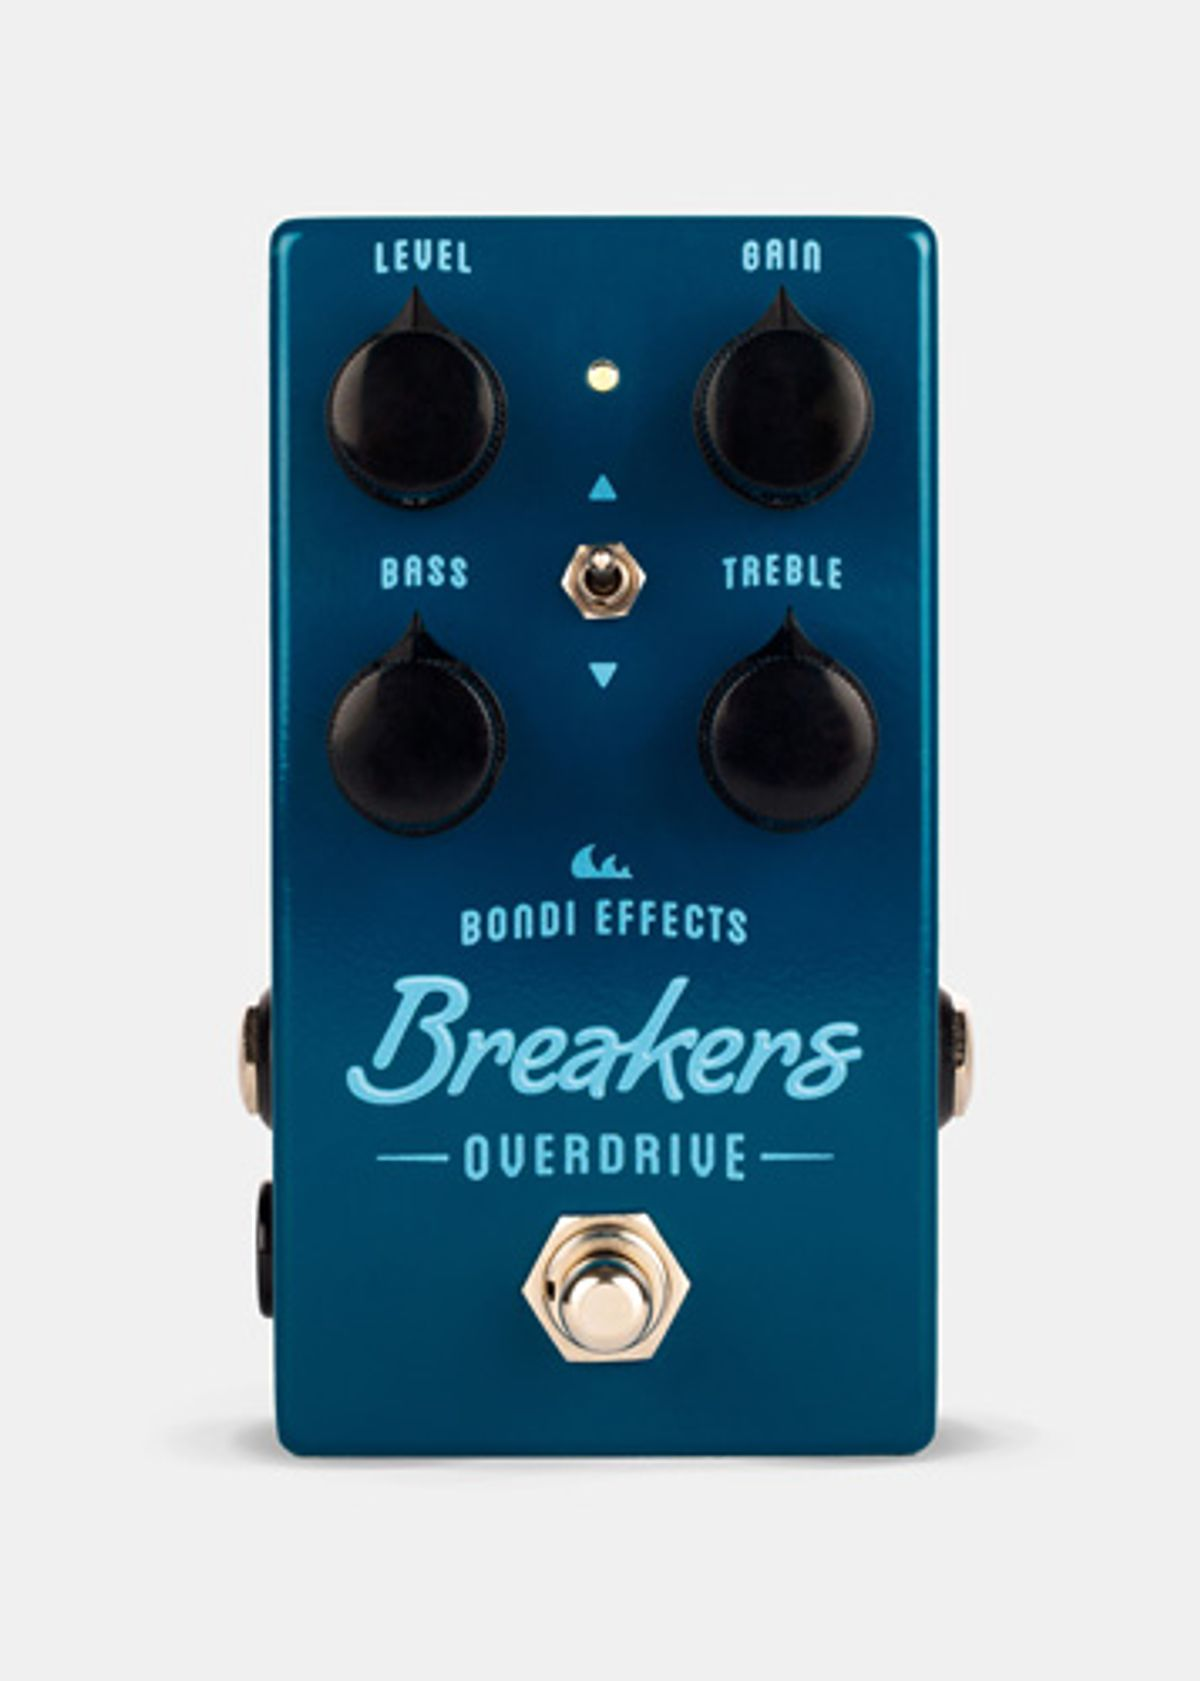 Bondi Effects Unveils the Breakers Overdrive